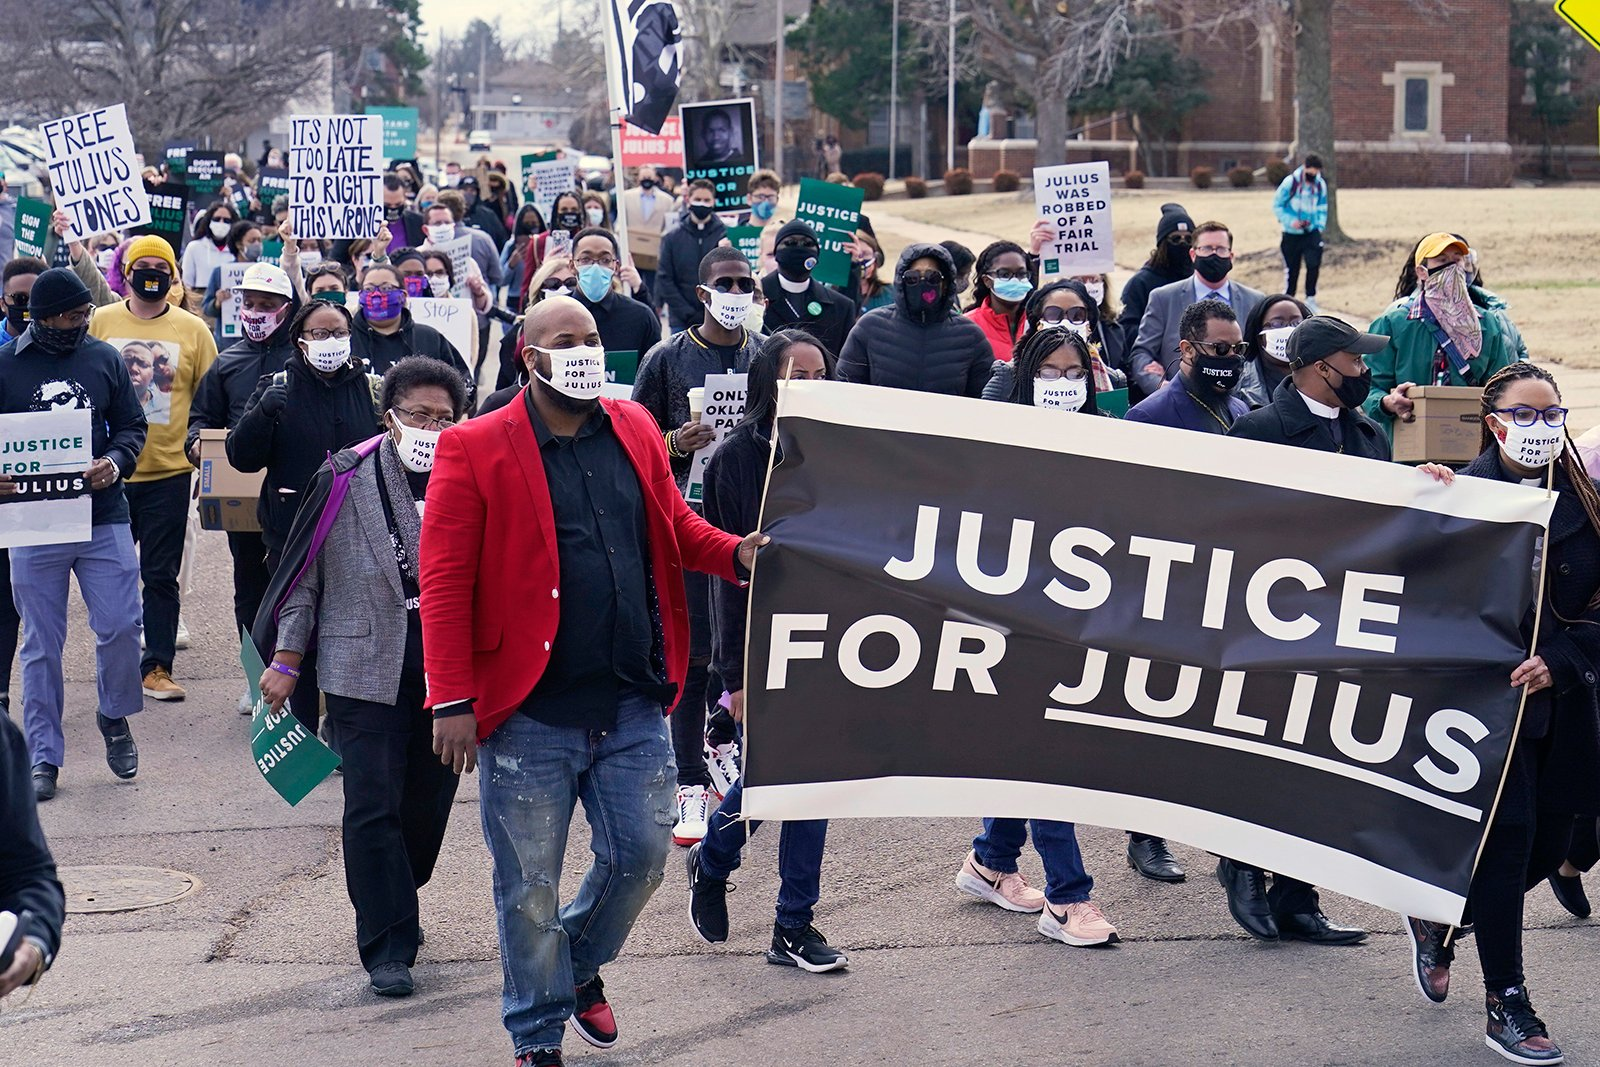 Supporters of Julius Jones, who has been on death row in Oklahoma for two decades, march to the offices of the Oklahoma Pardon and Parole Board, Thursday, Feb. 25, 2021, in Oklahoma City, where they presented a petition with over 6.2 million signatures, calling for Jones' death sentence to be commuted. (AP Photo/Sue Ogrocki)